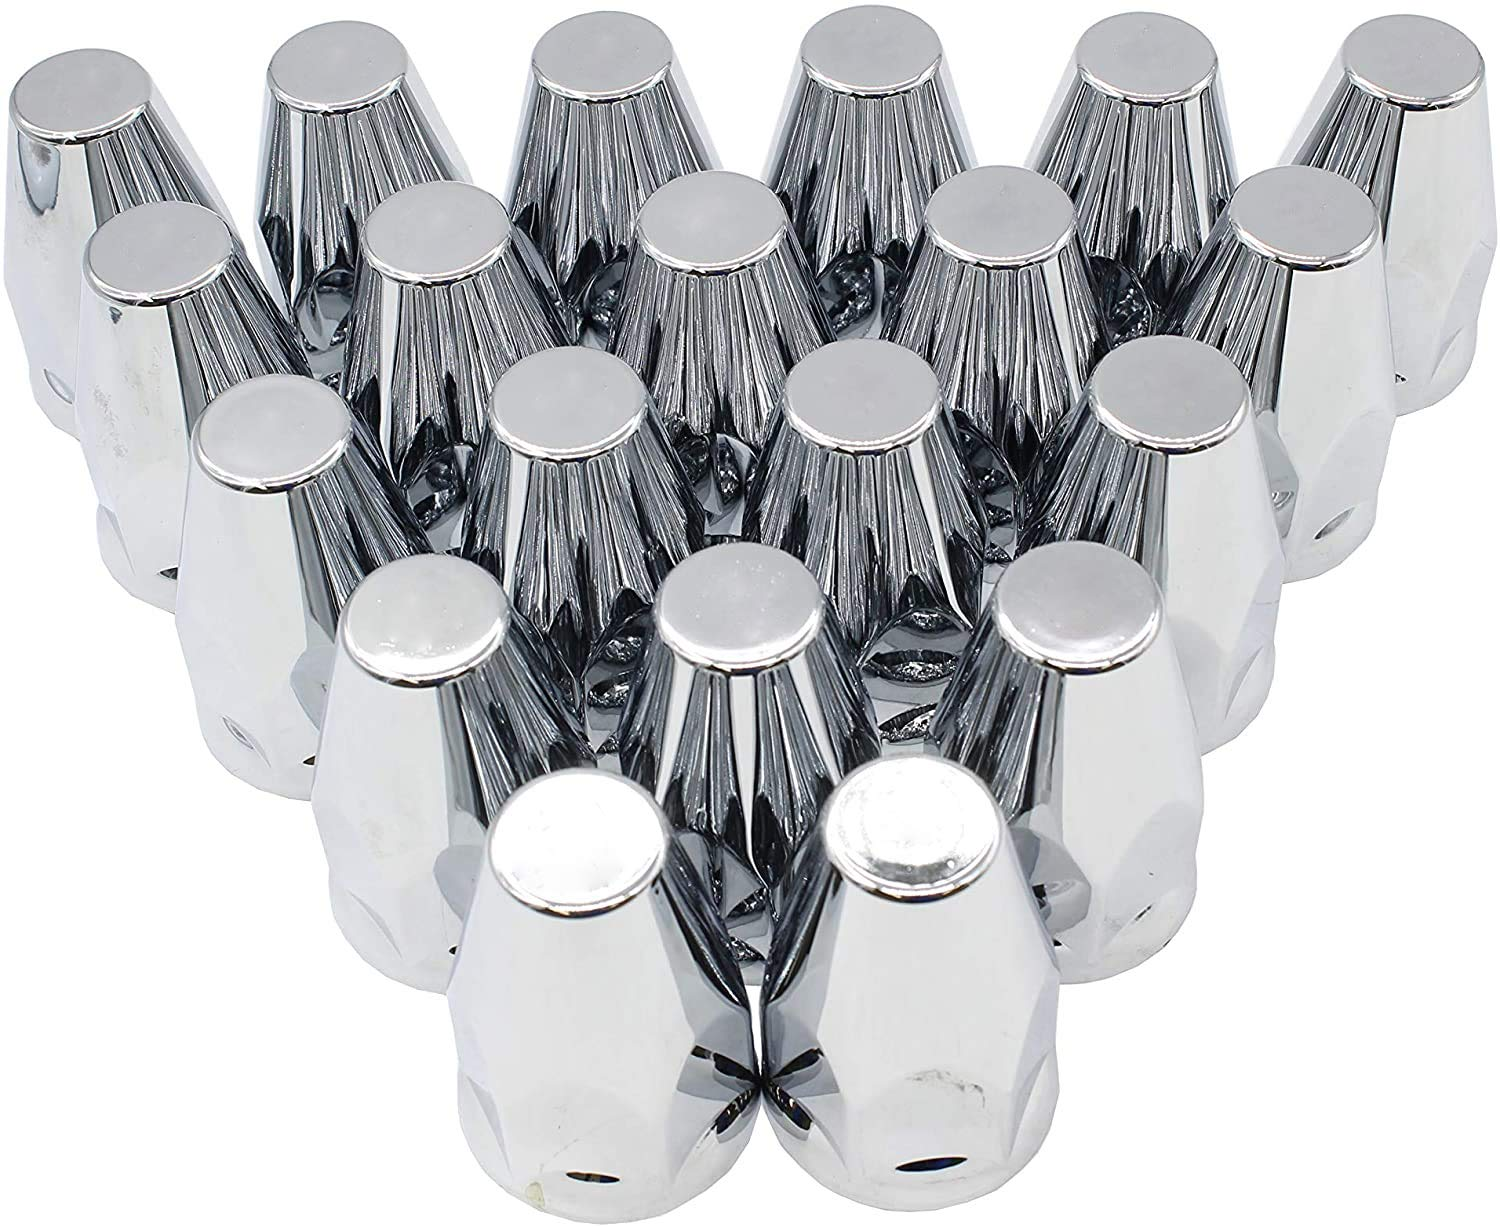 LJ INTERNATIONAL Nut Cover Chrome ABS Threaded Lug Nut Covers With Flange 33mm and 32mm-20pcs